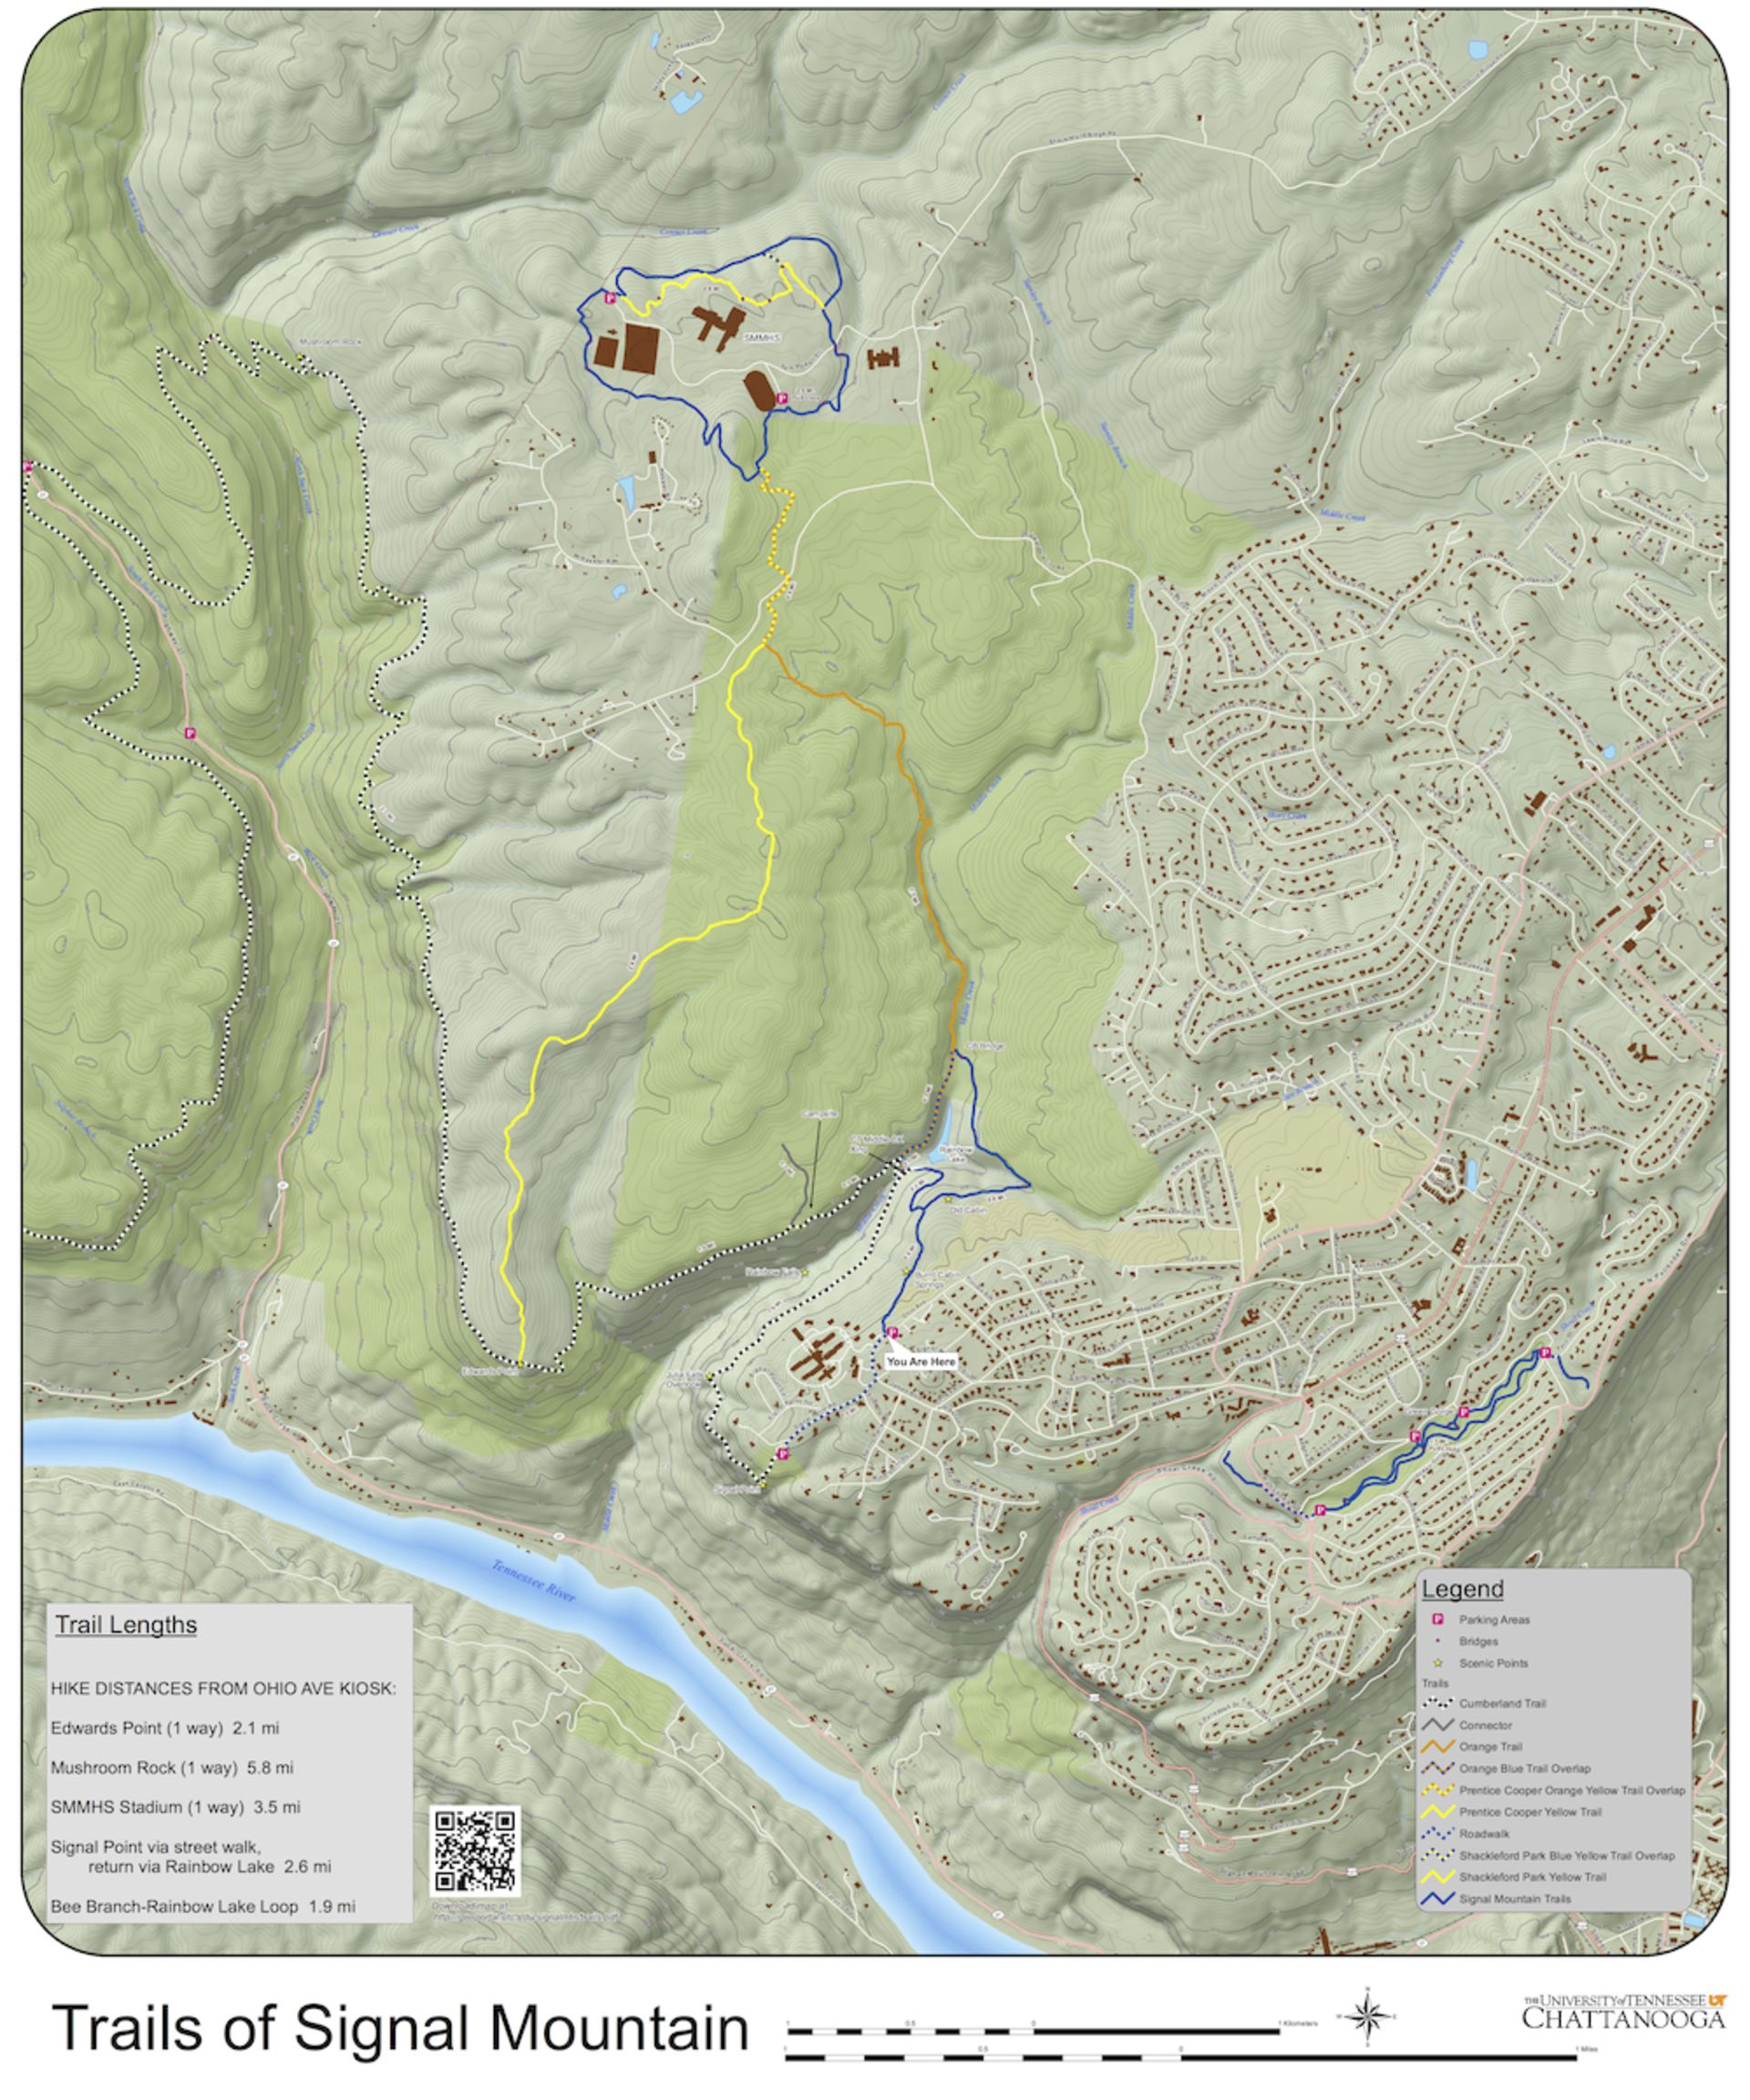 Signal Mountain Trails Map Now Available Here!